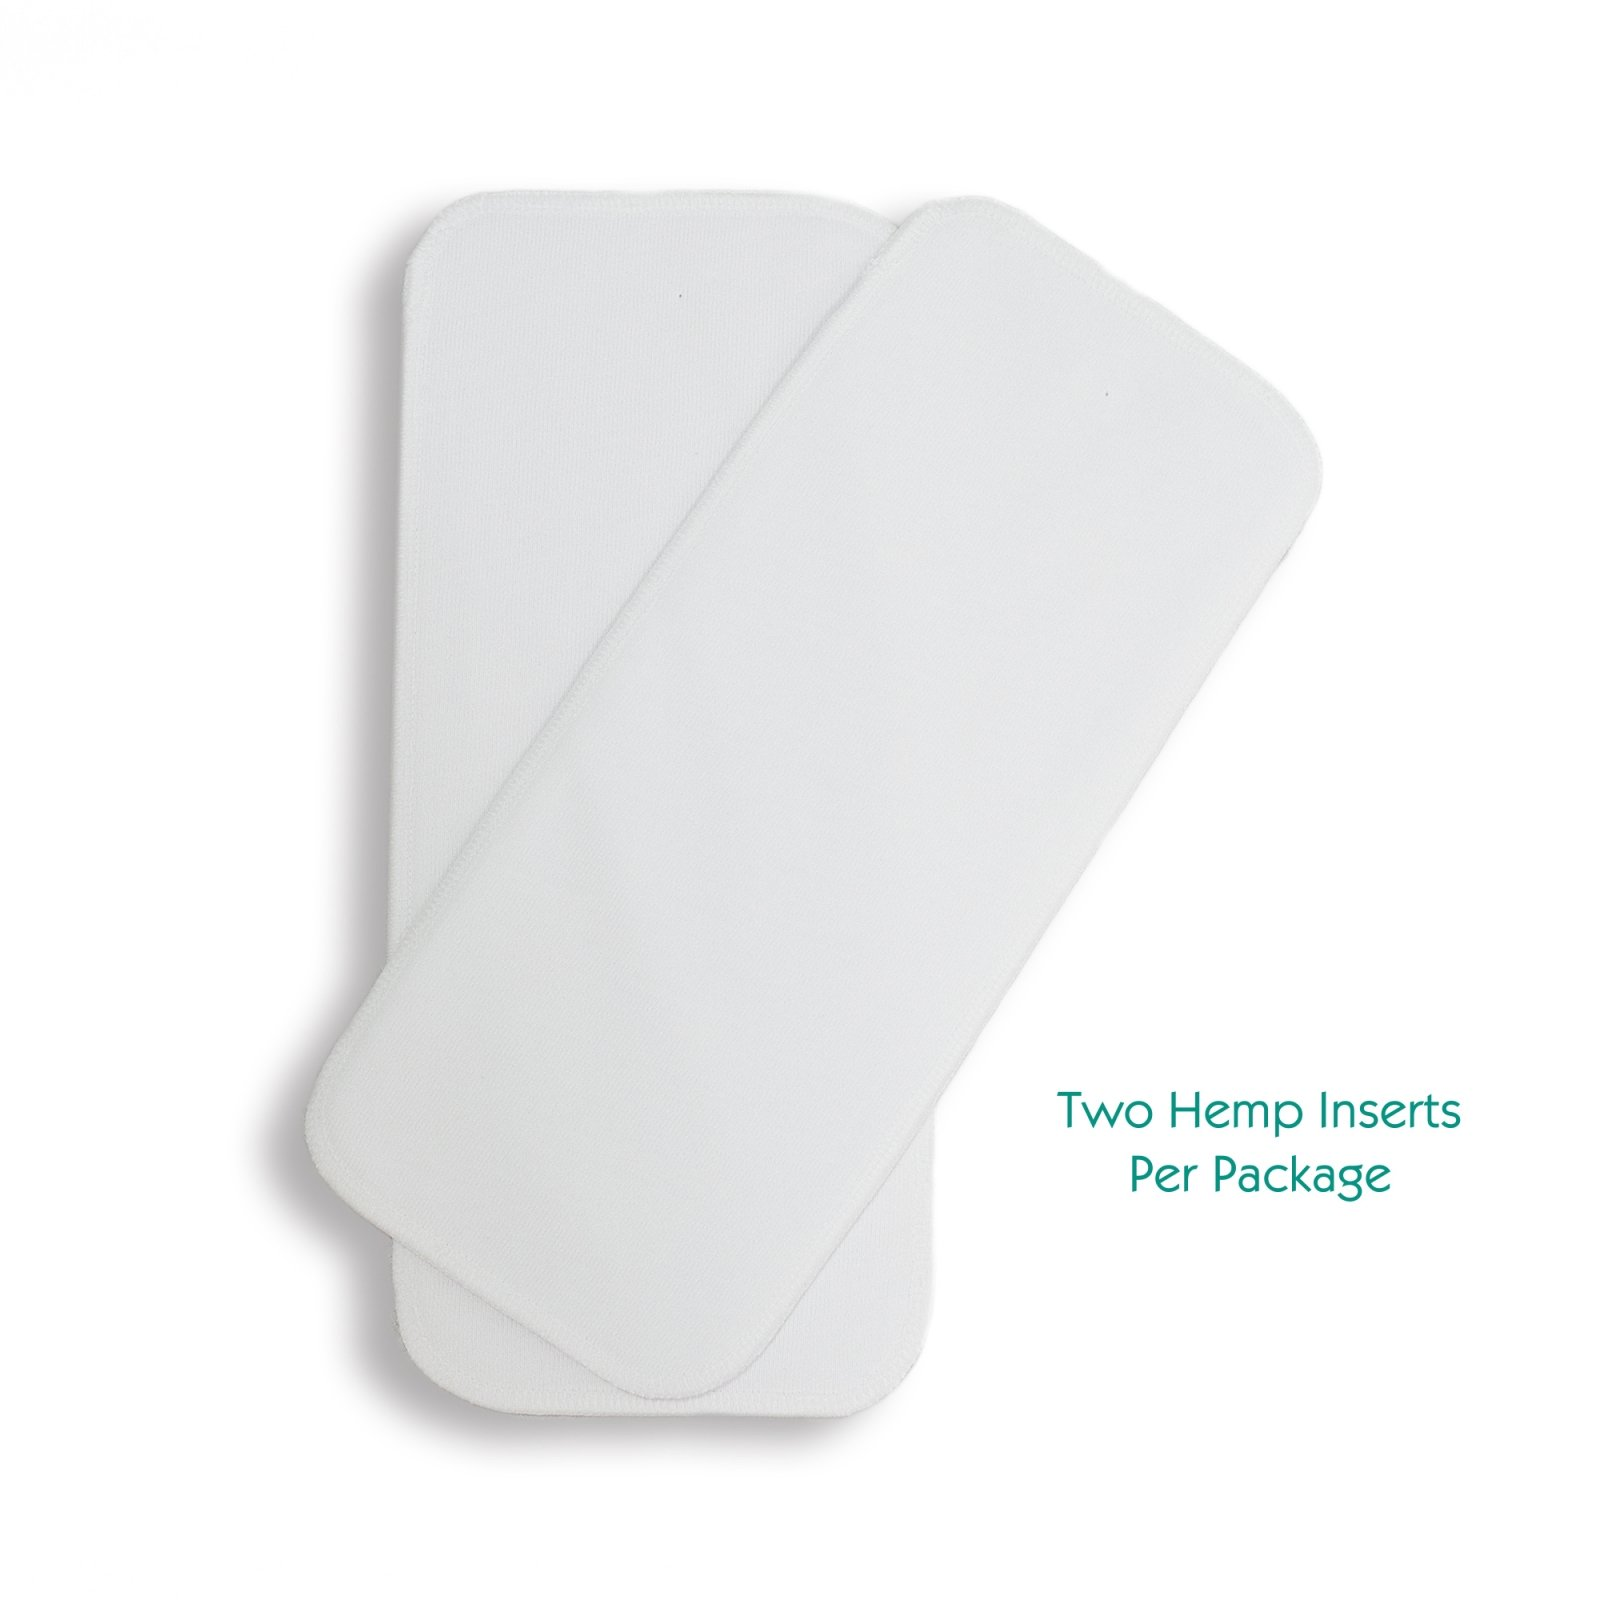 Thirsties Hemp Inserts